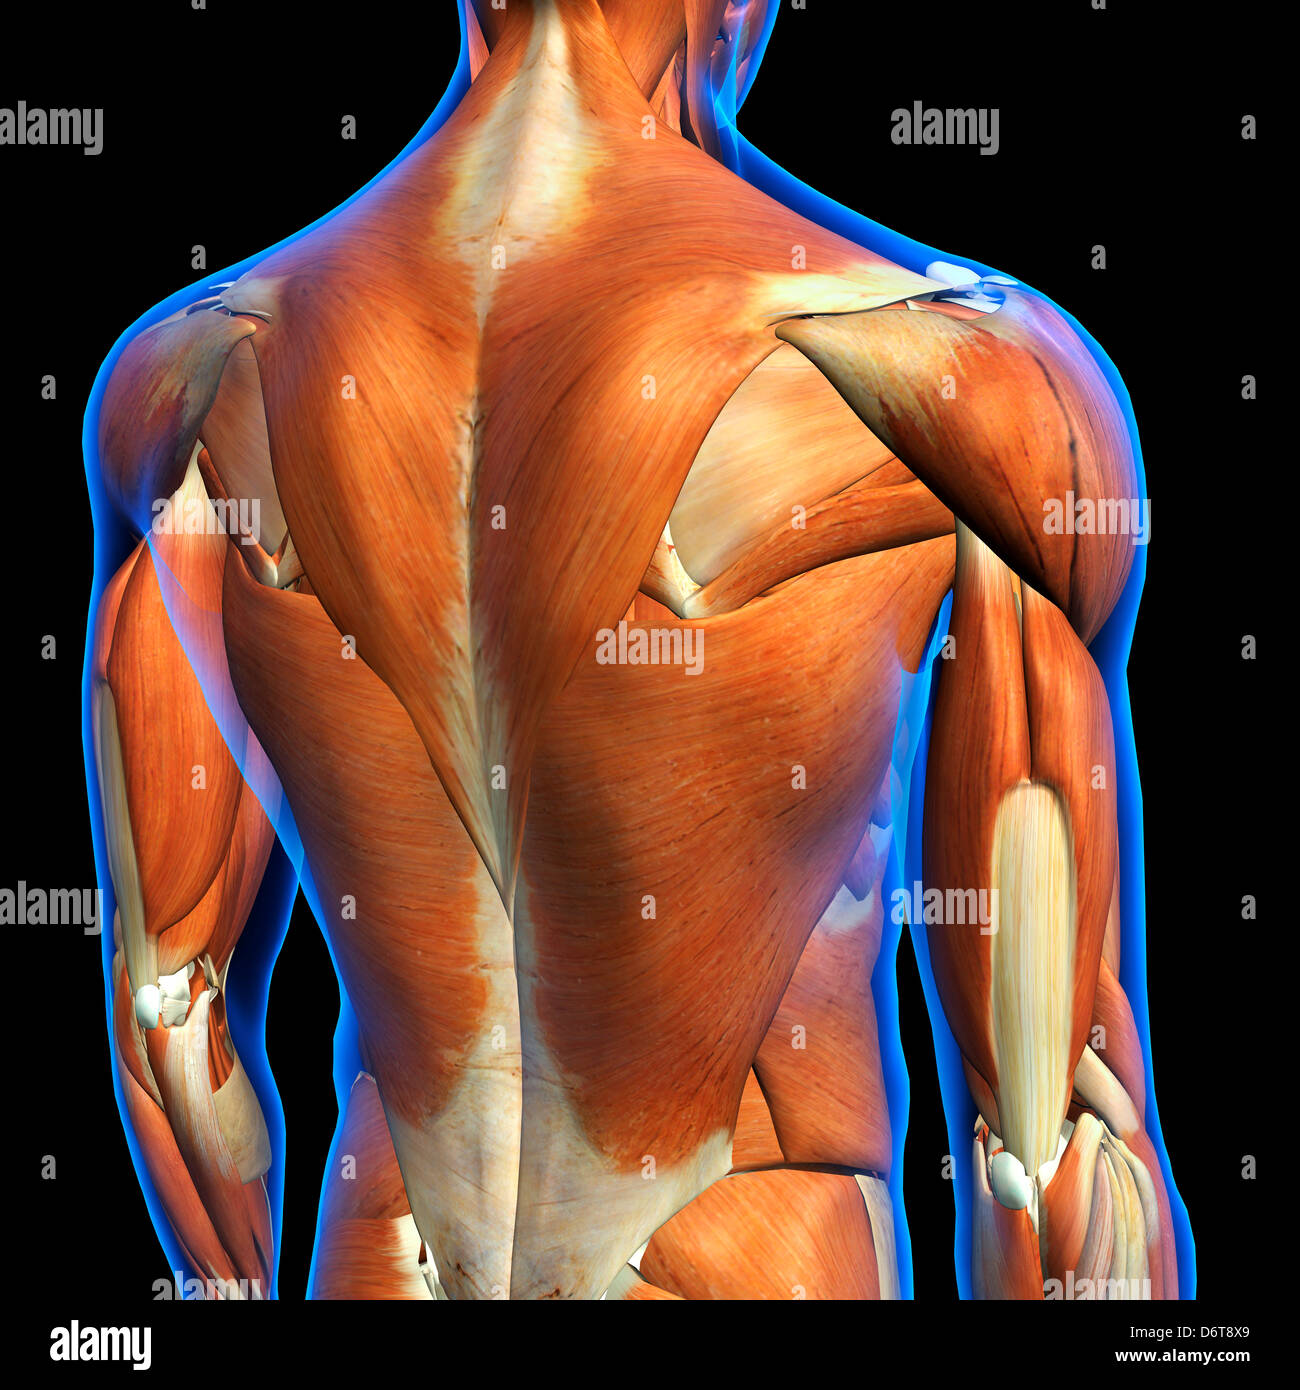 Male upper back muscles anatomy in blue X-Ray outline Full Color 3D ...